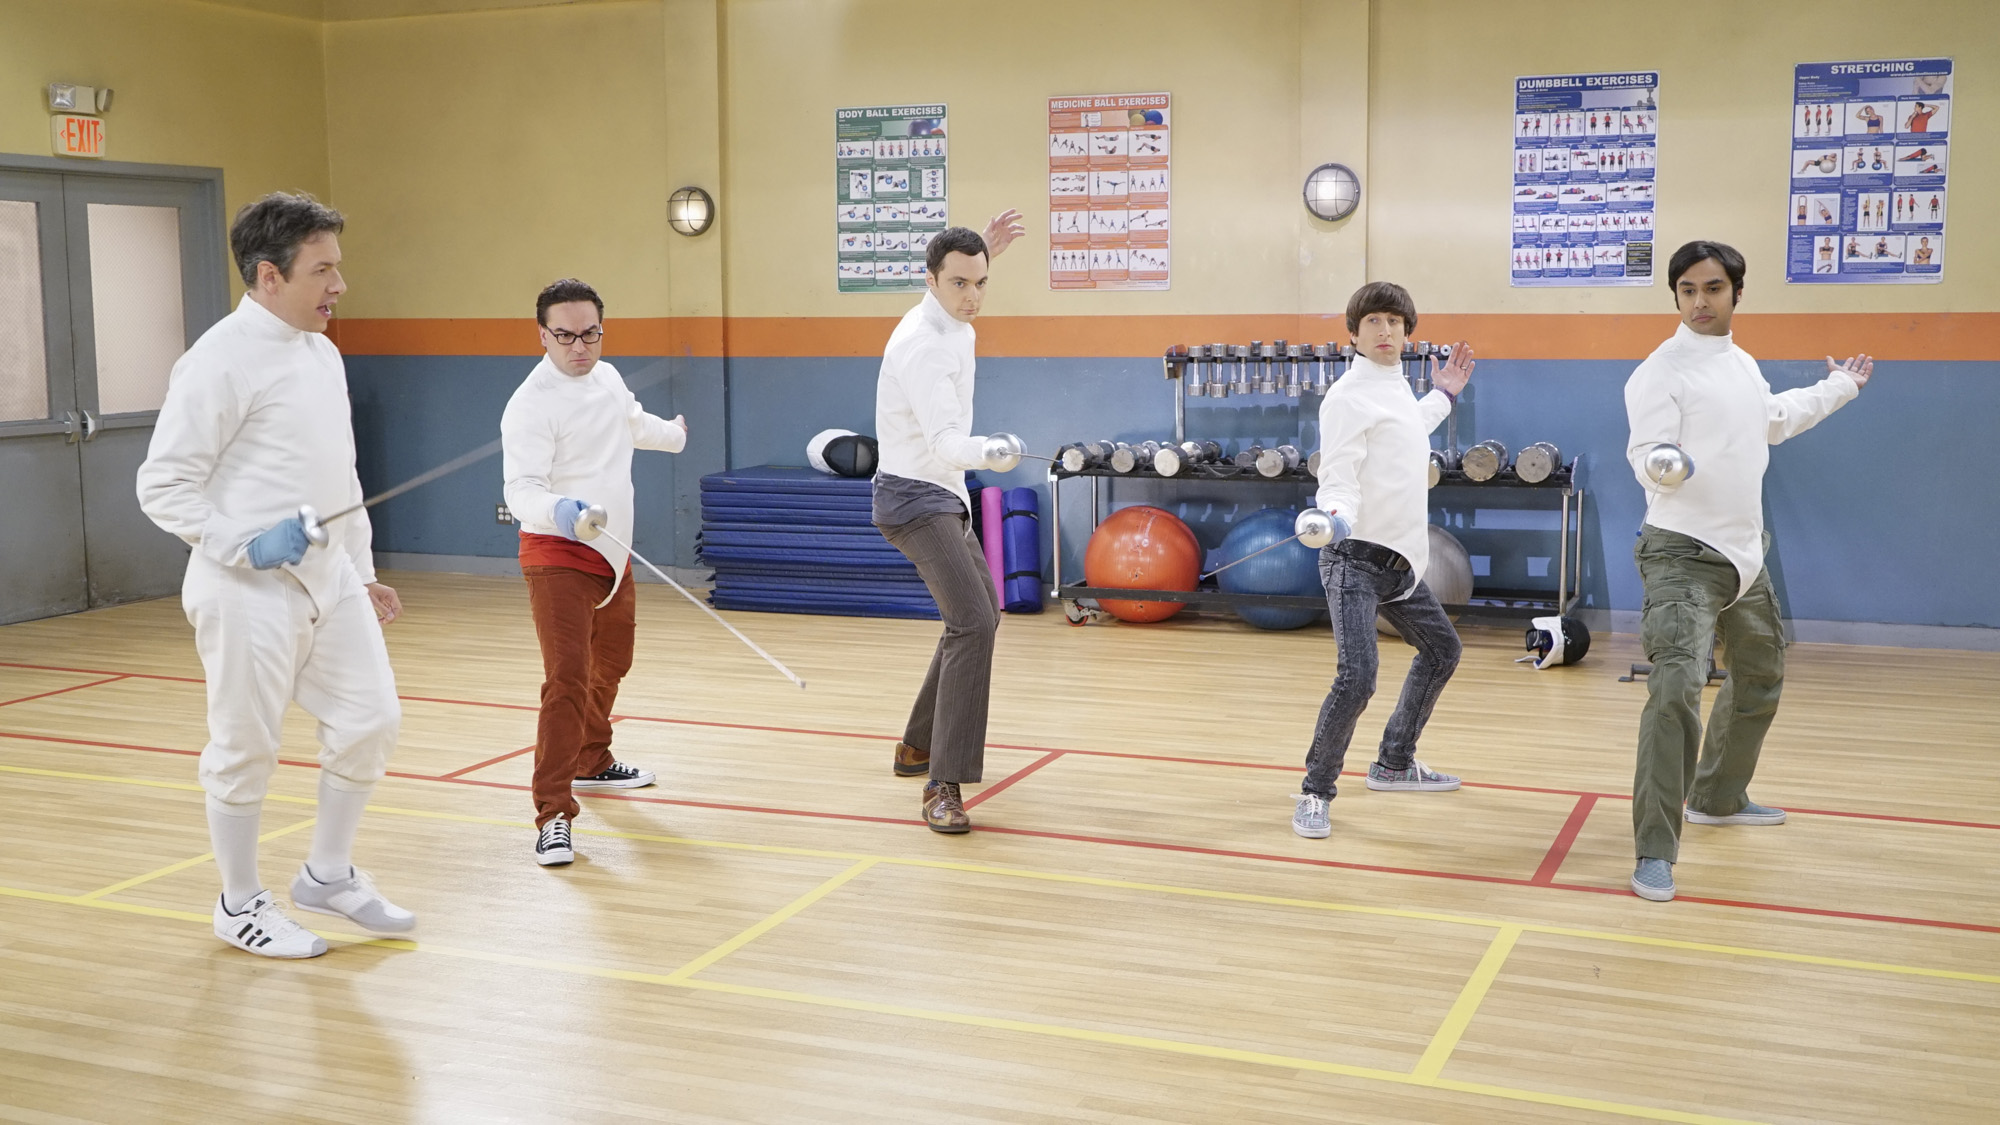 Fencing isn't a joke for these sword-wielding n00bs